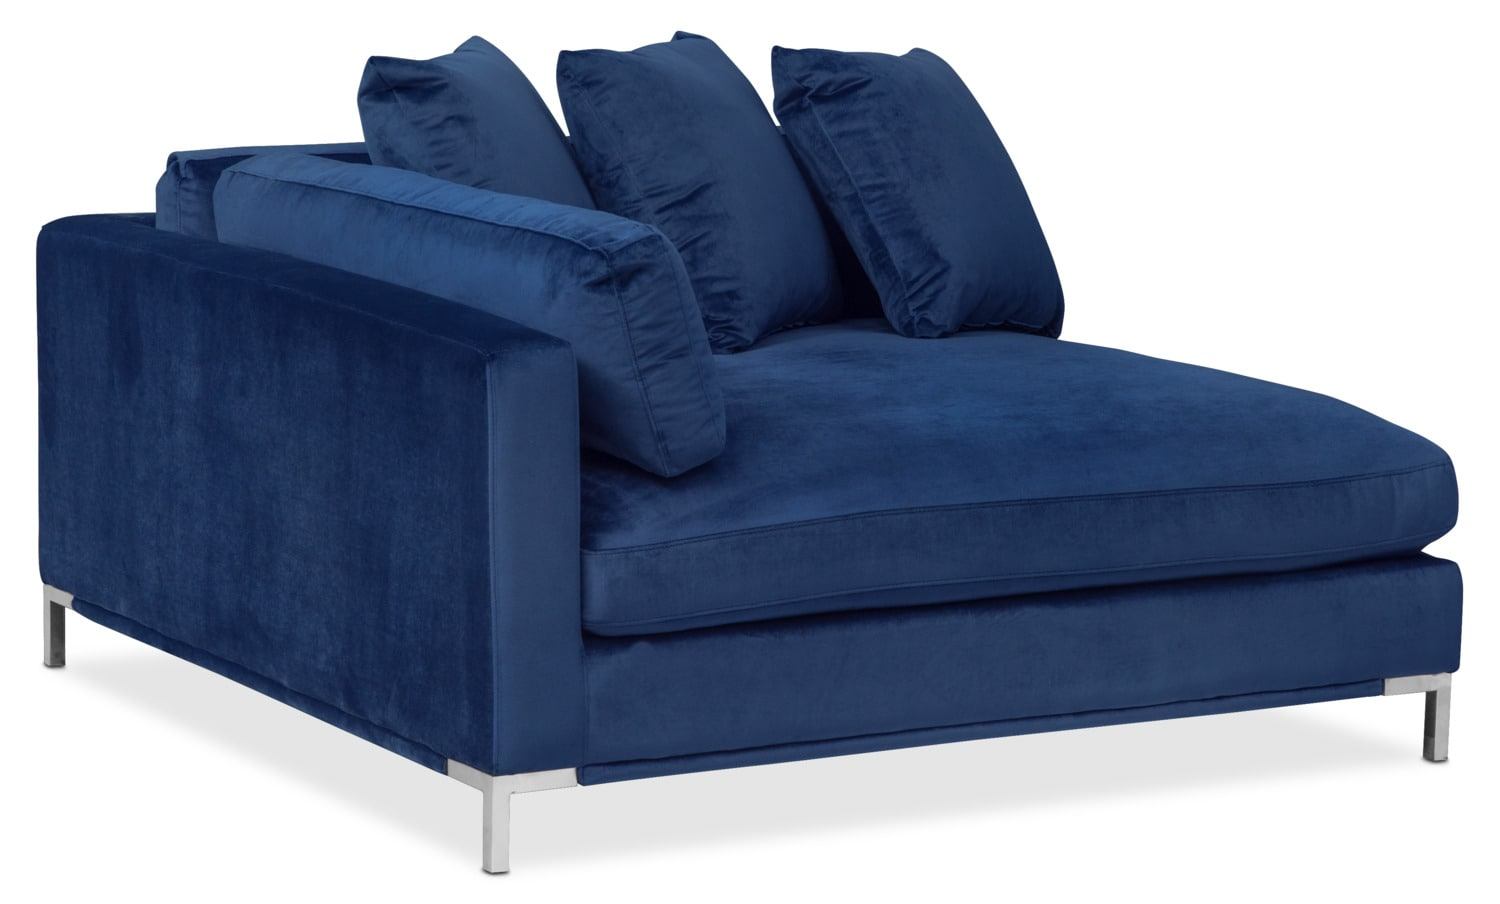 Living Room Furniture - Moda Corner Sofa - Blue